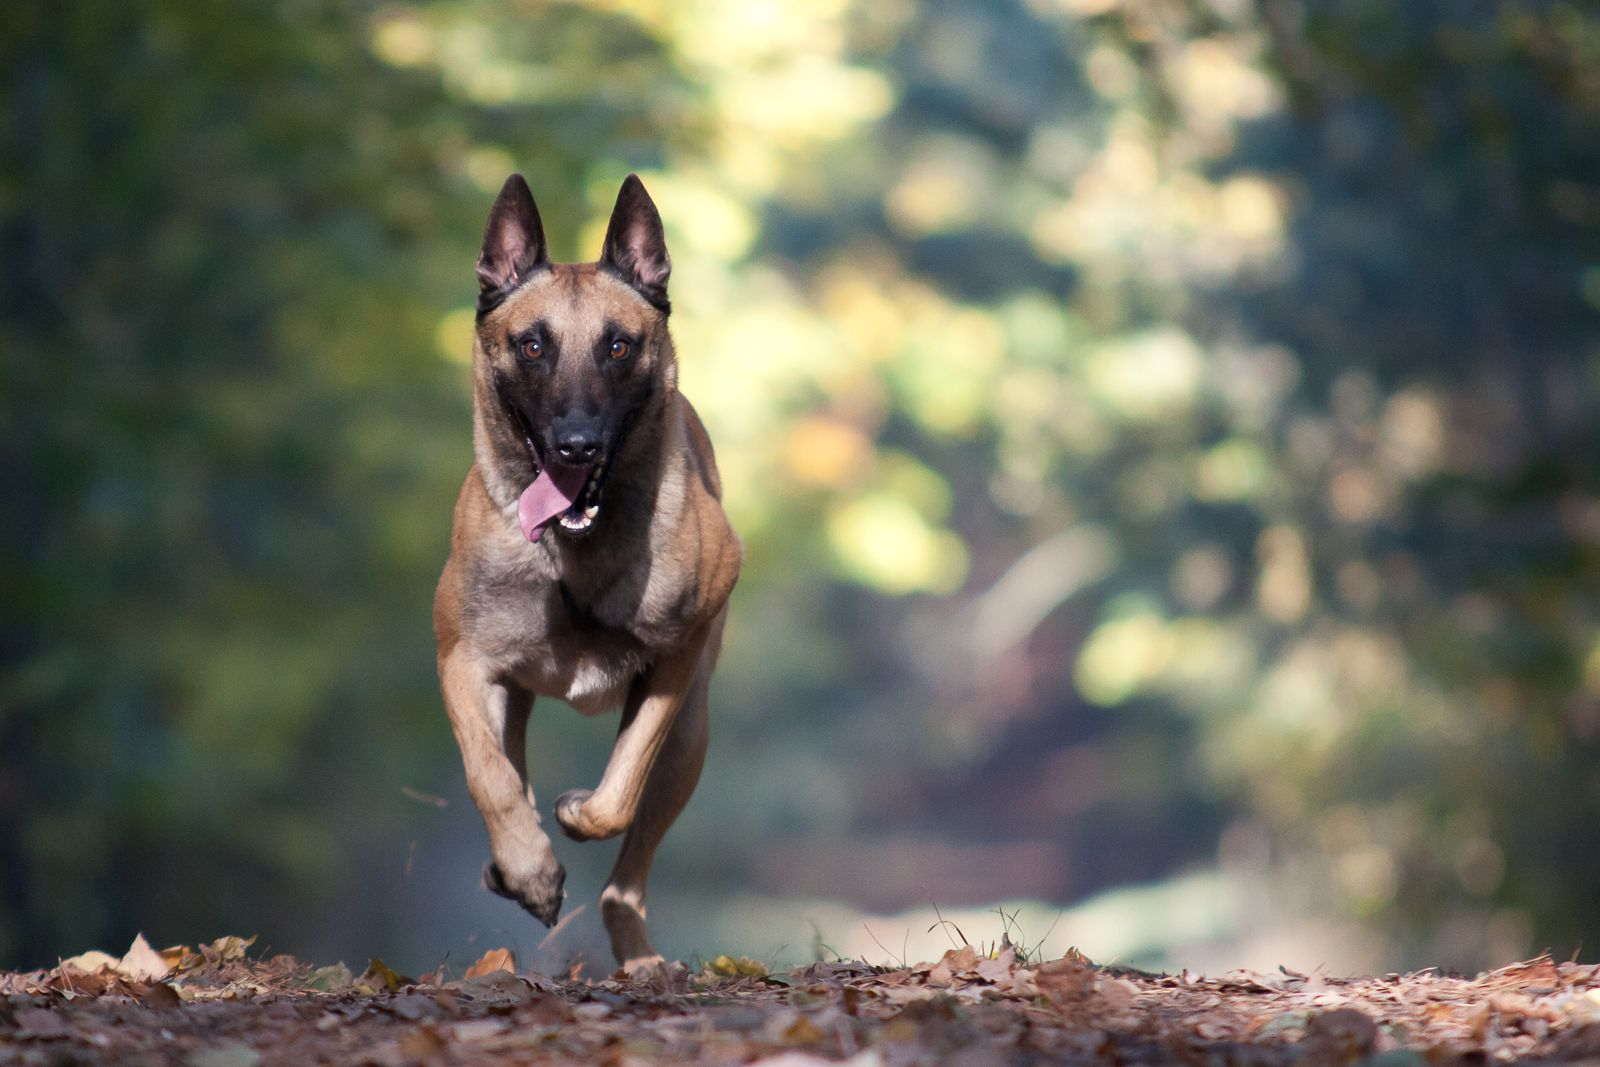 Malinois running in a forrest